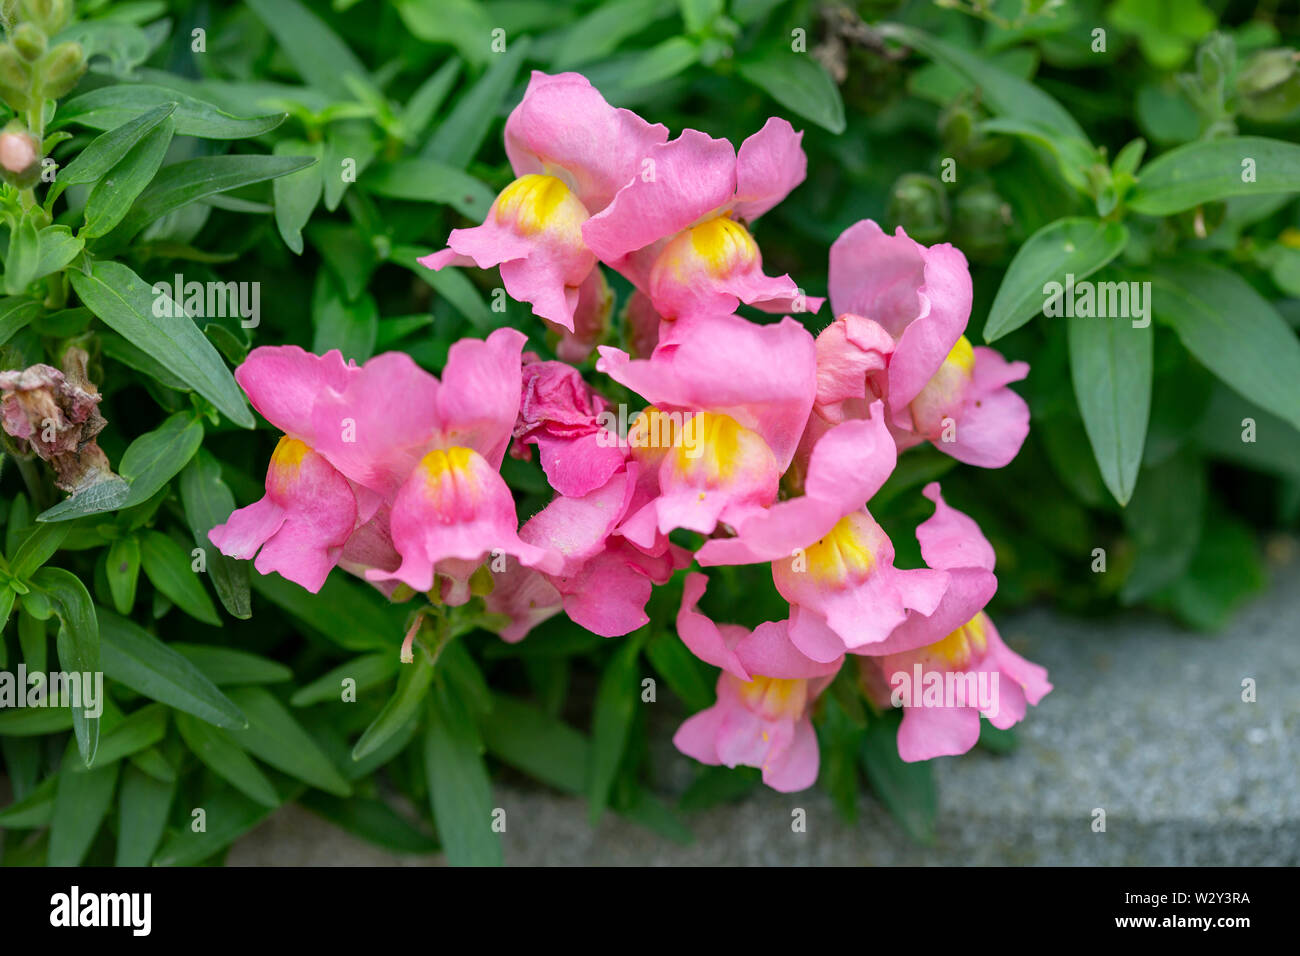 Snapdragons, Antirrhinum, dragon flowers - Stock Image